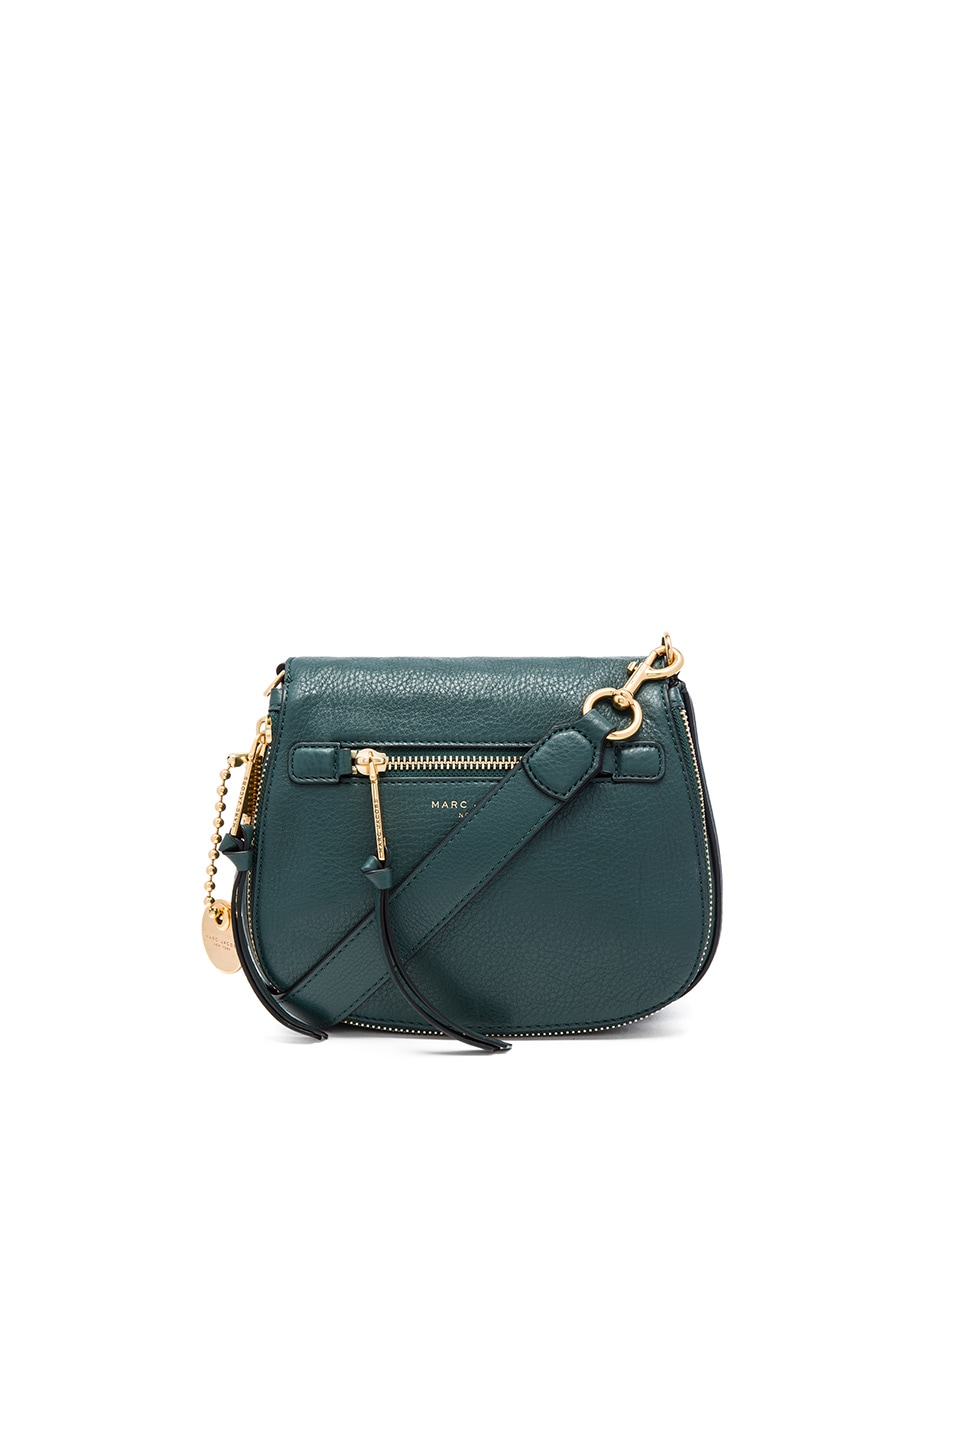 Marc Jacobs Recruit Small Saddle Bag in Green Jewel